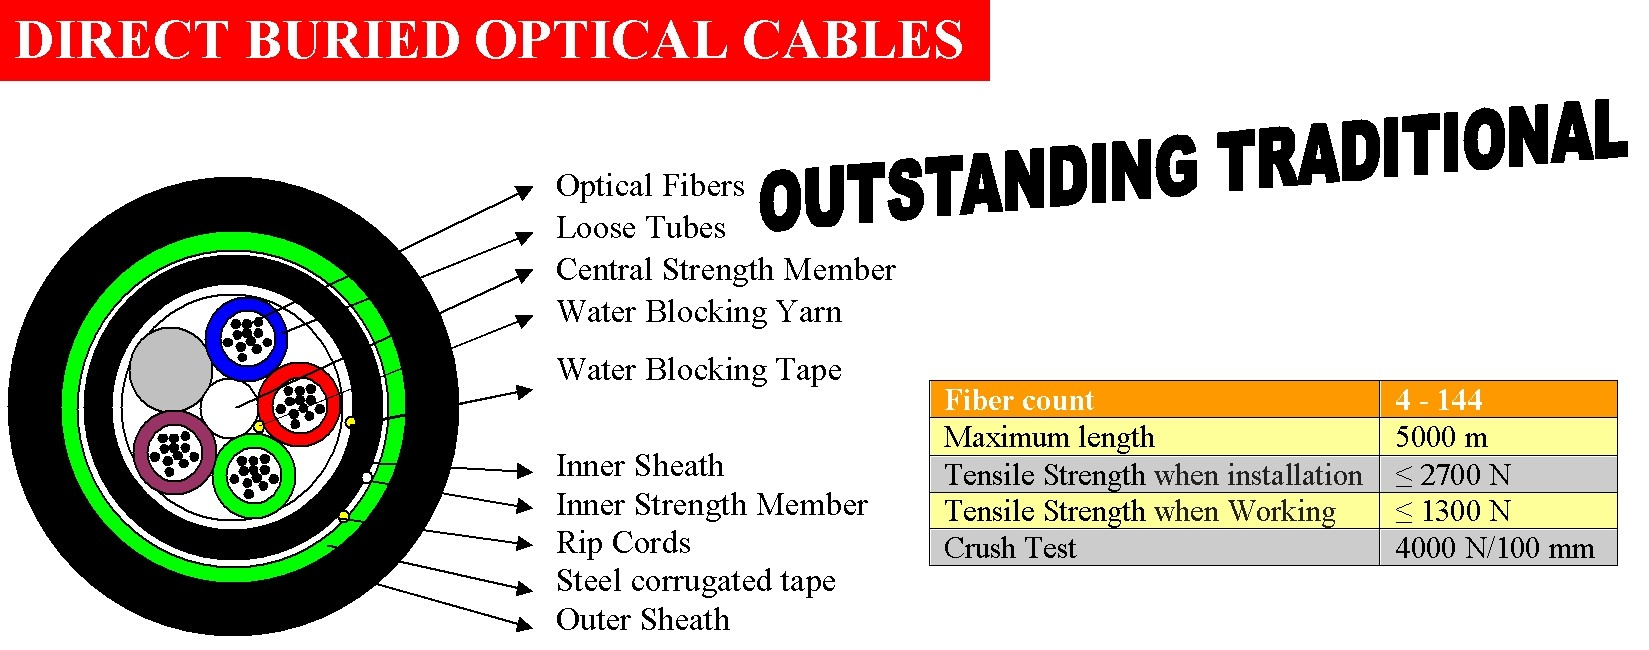 DIRECT BURIED OPTICAL CABLES